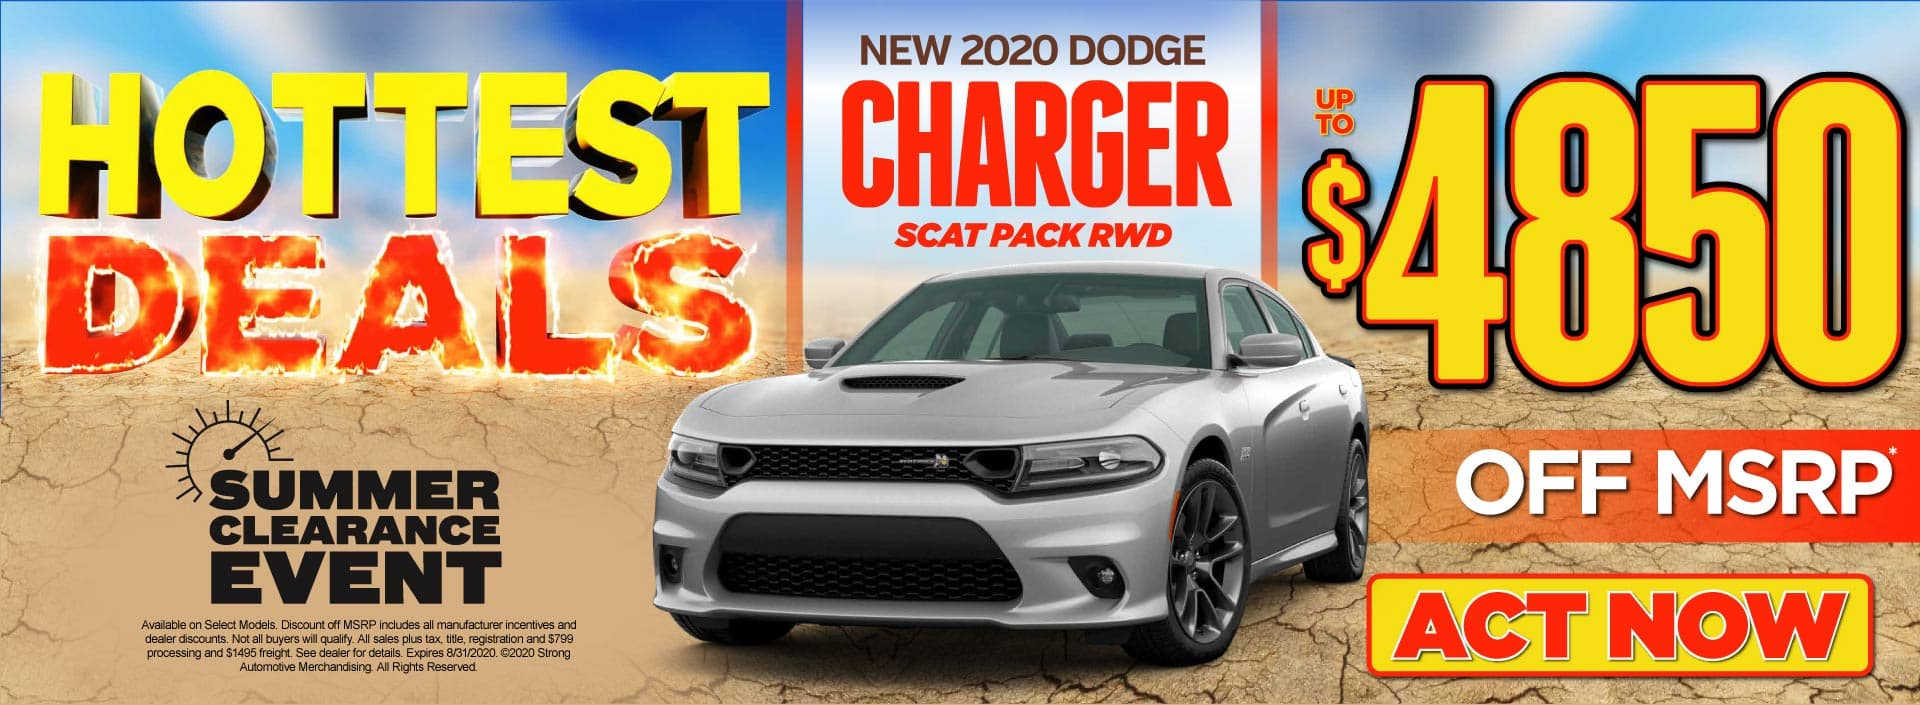 New 2020 Dodge Charger - Up to $4850 off MSRP* - Click to View Inventory